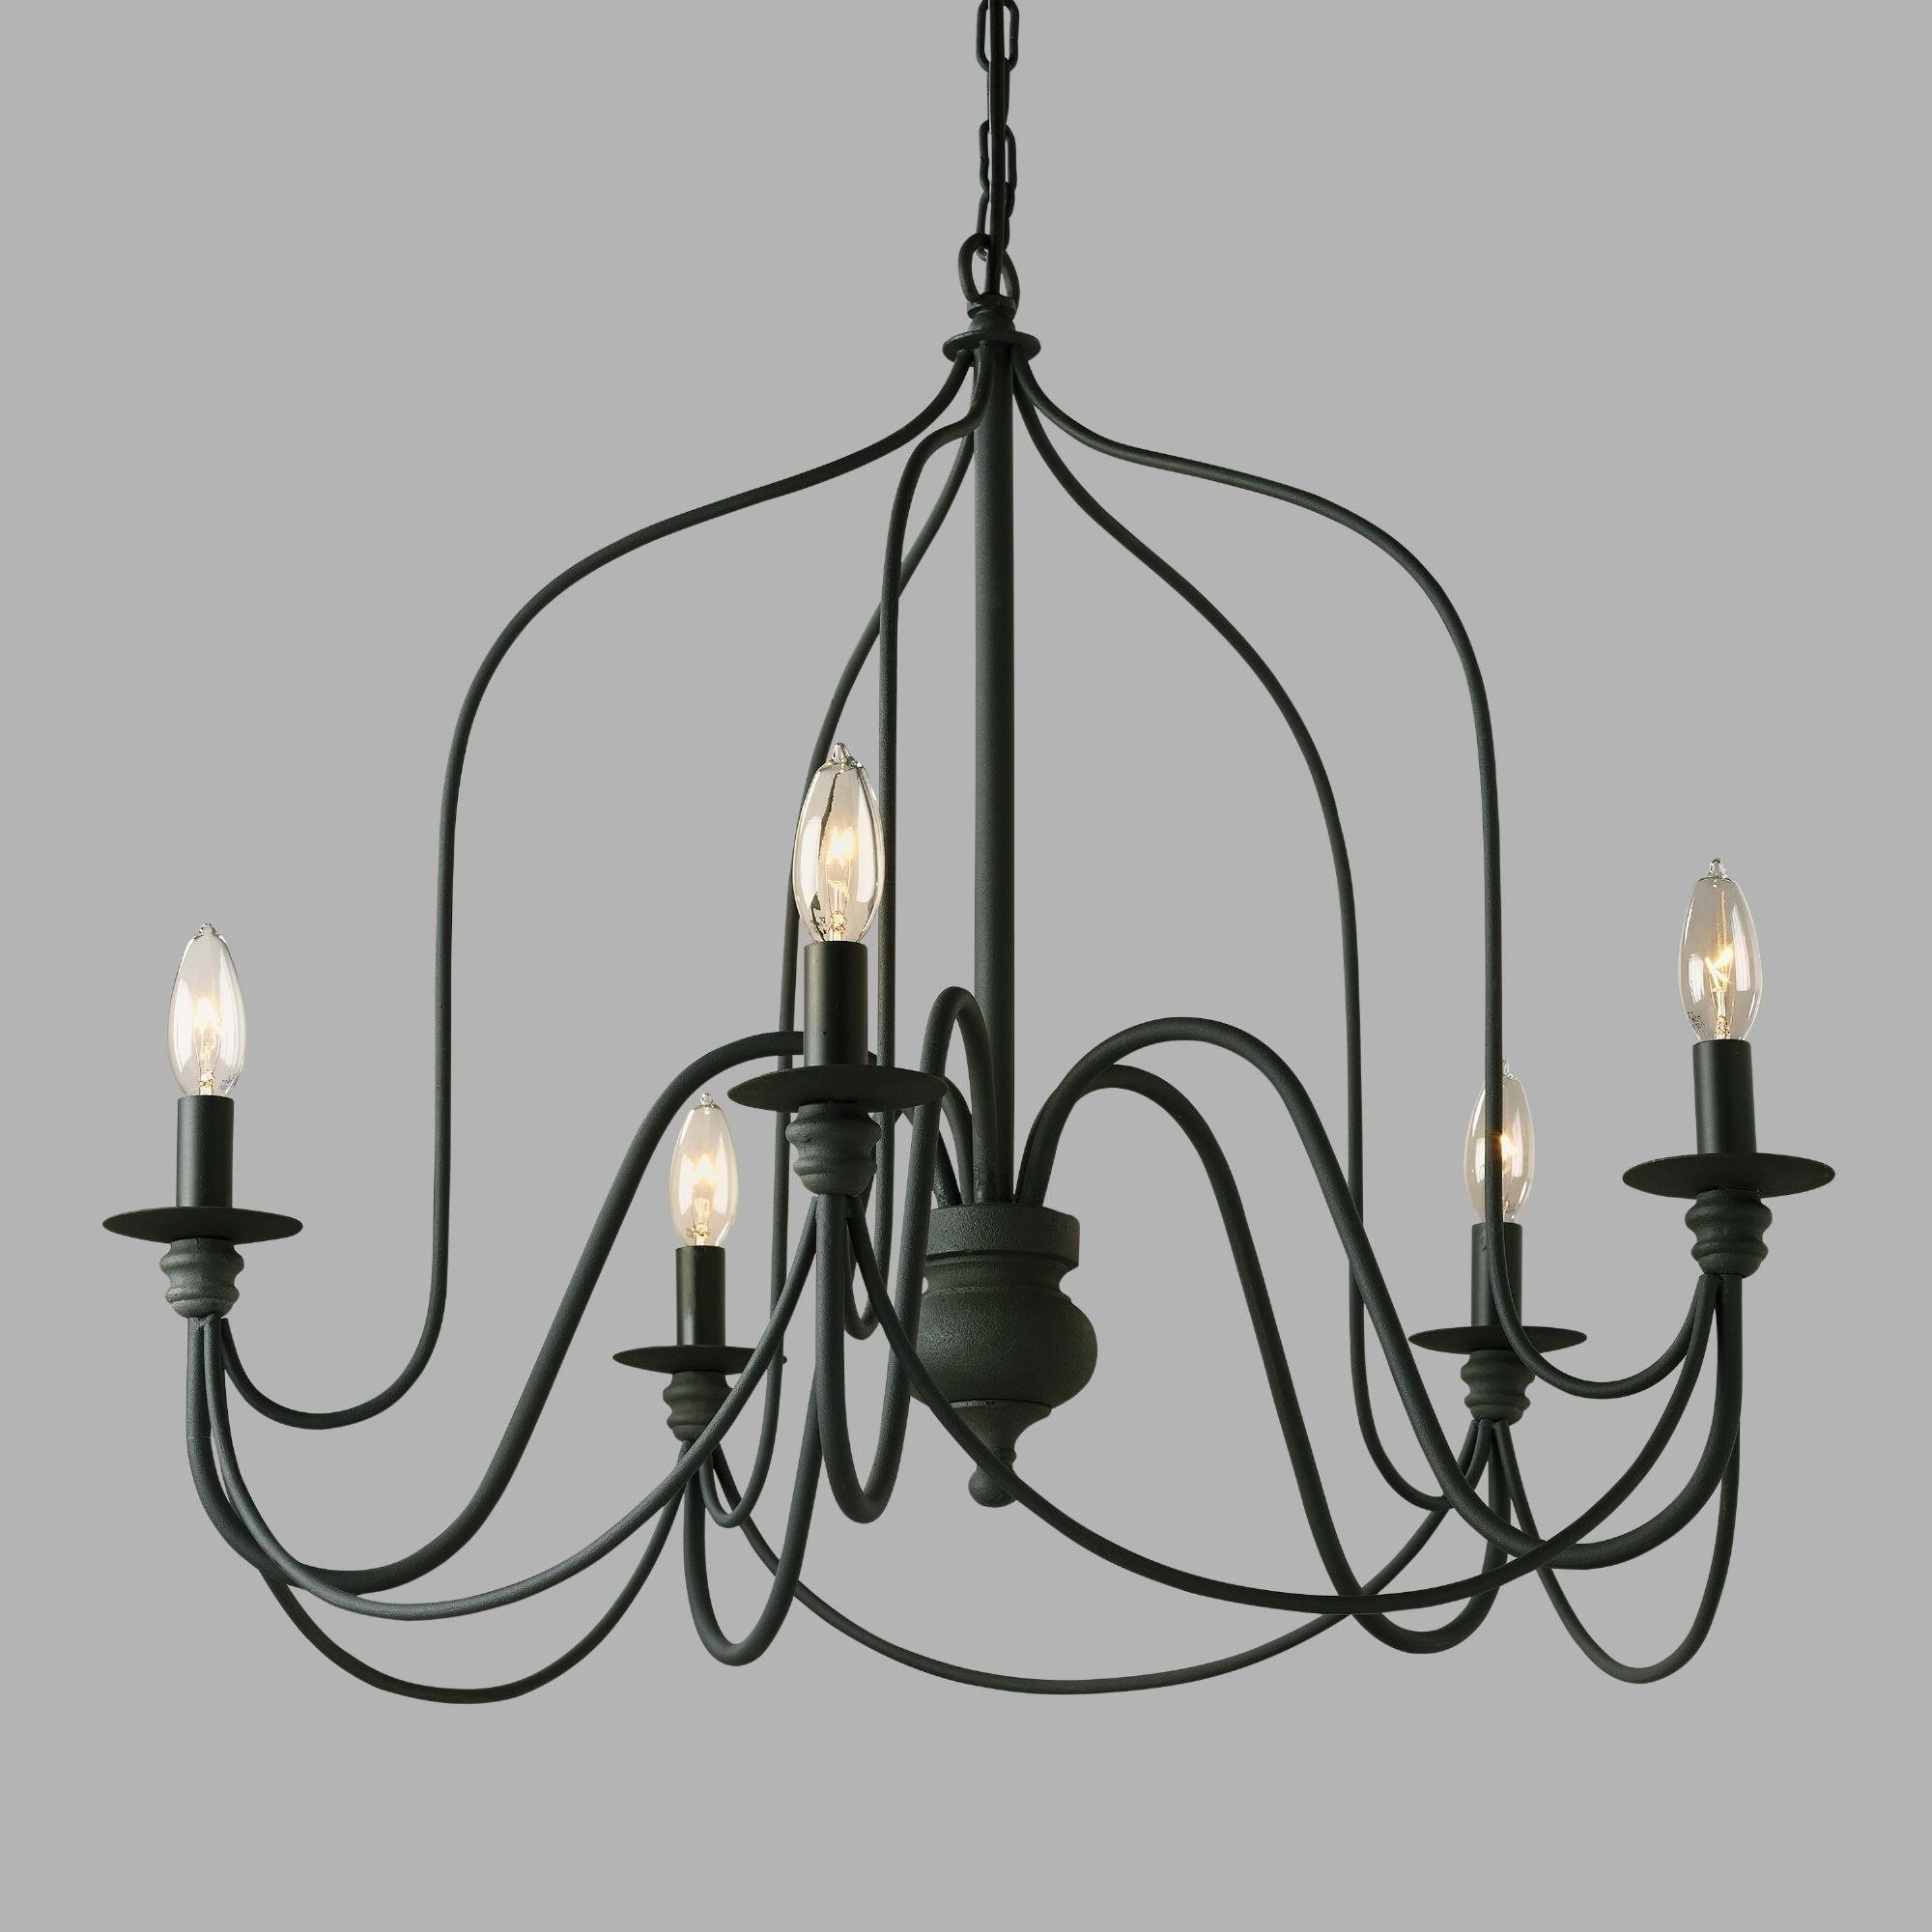 Our Exclusive Rustic Wire Chandelier Features A Slender Silhouette In Well Known Vintage Black Chandelier (View 12 of 20)